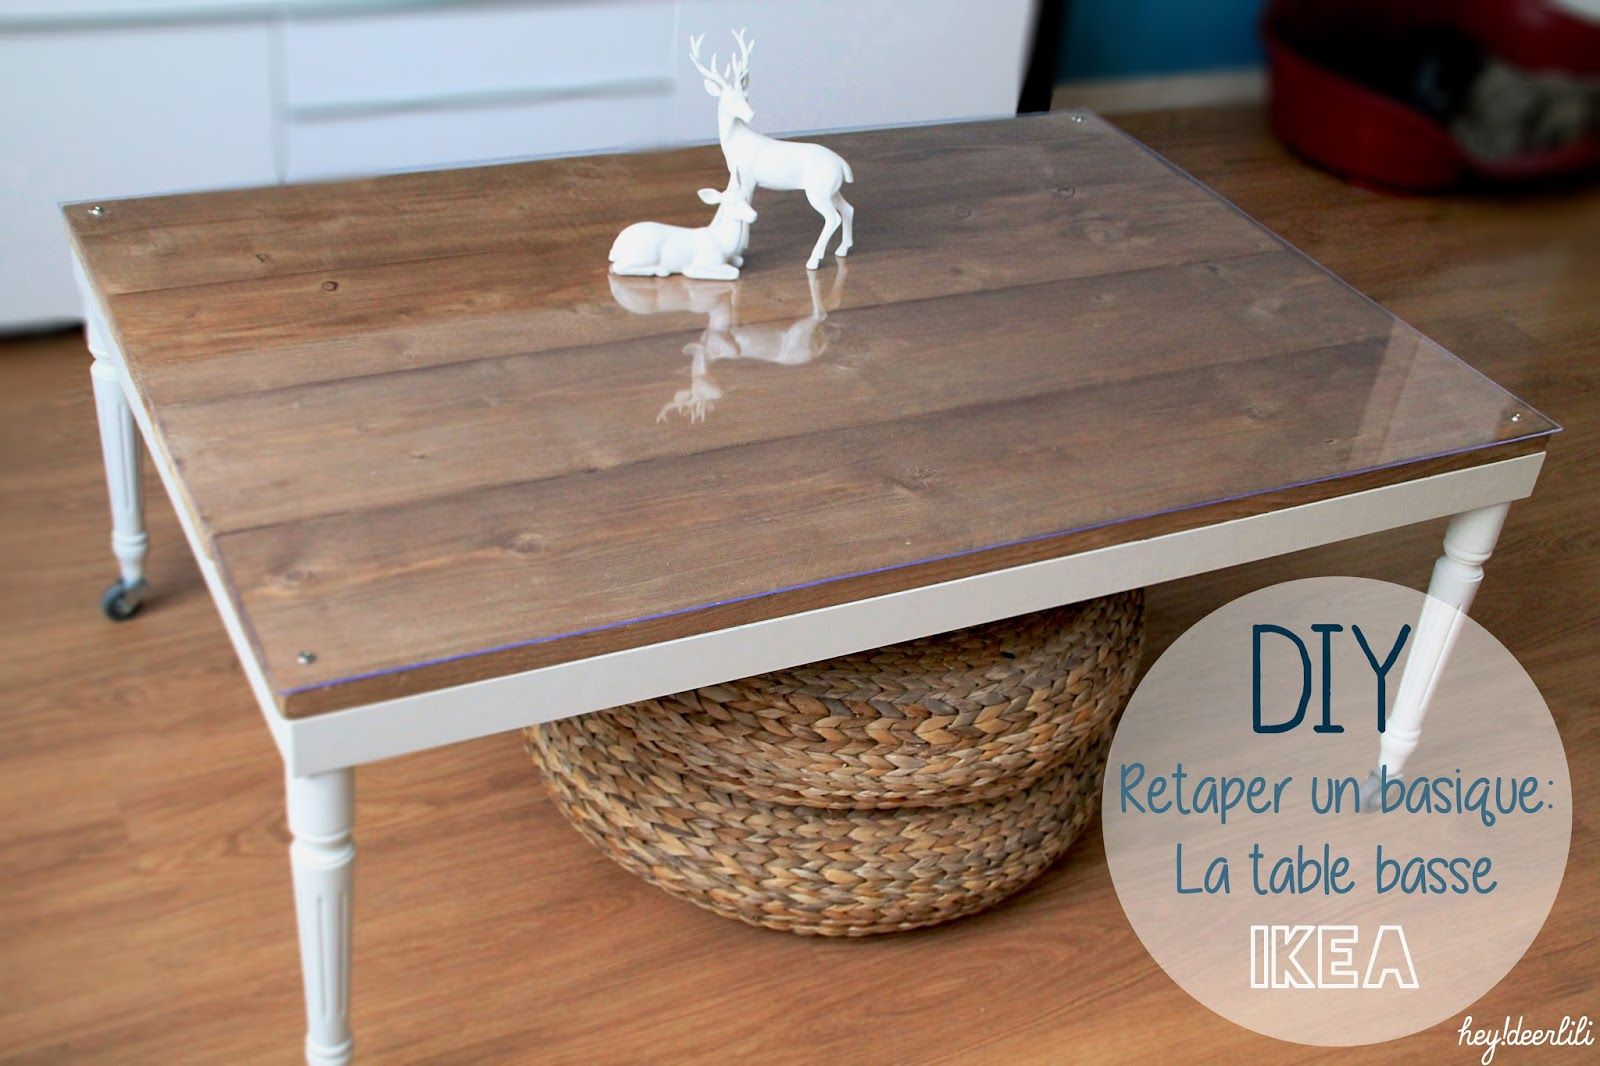 Hey deer lili retaper un basique la table basse ikea diy customiser ses meubles - Personnaliser table basse ikea ...